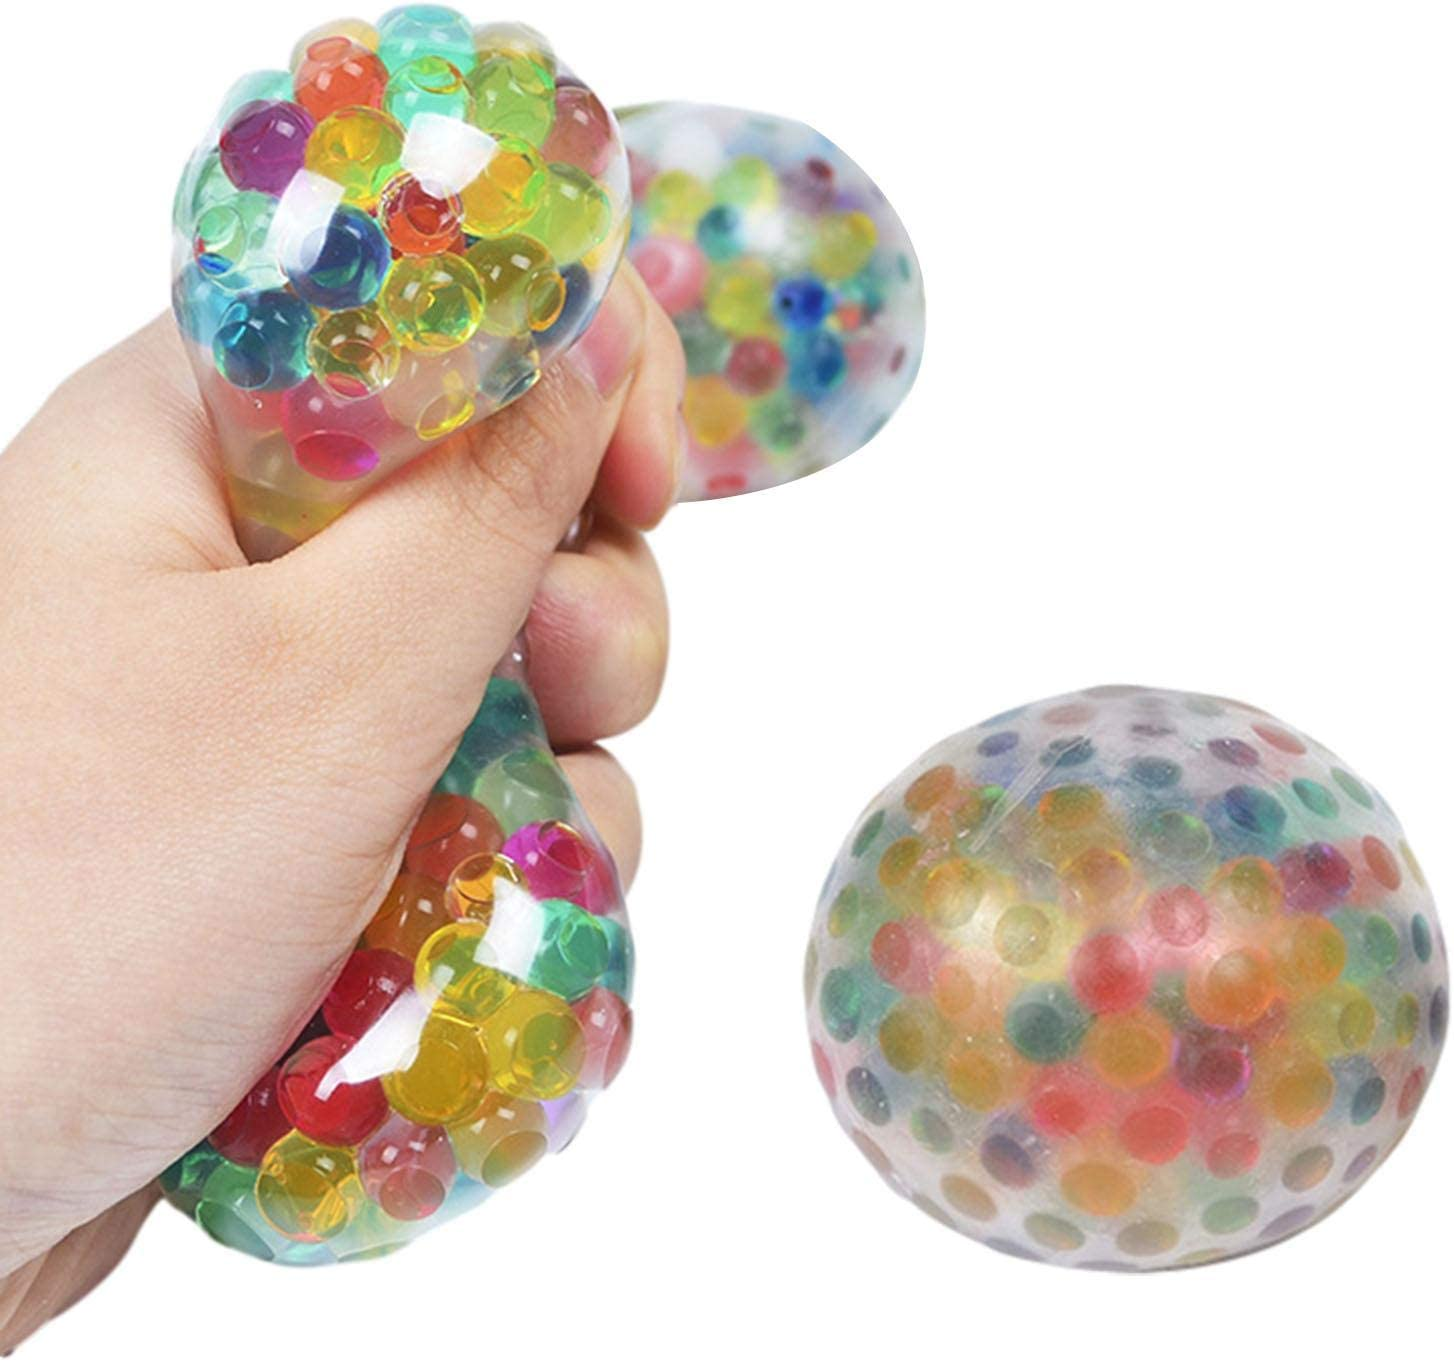 Daoxiang Stress Ball for Kids Super popular specialty store Anti Ba Adults Japan Maker New Squeeze and